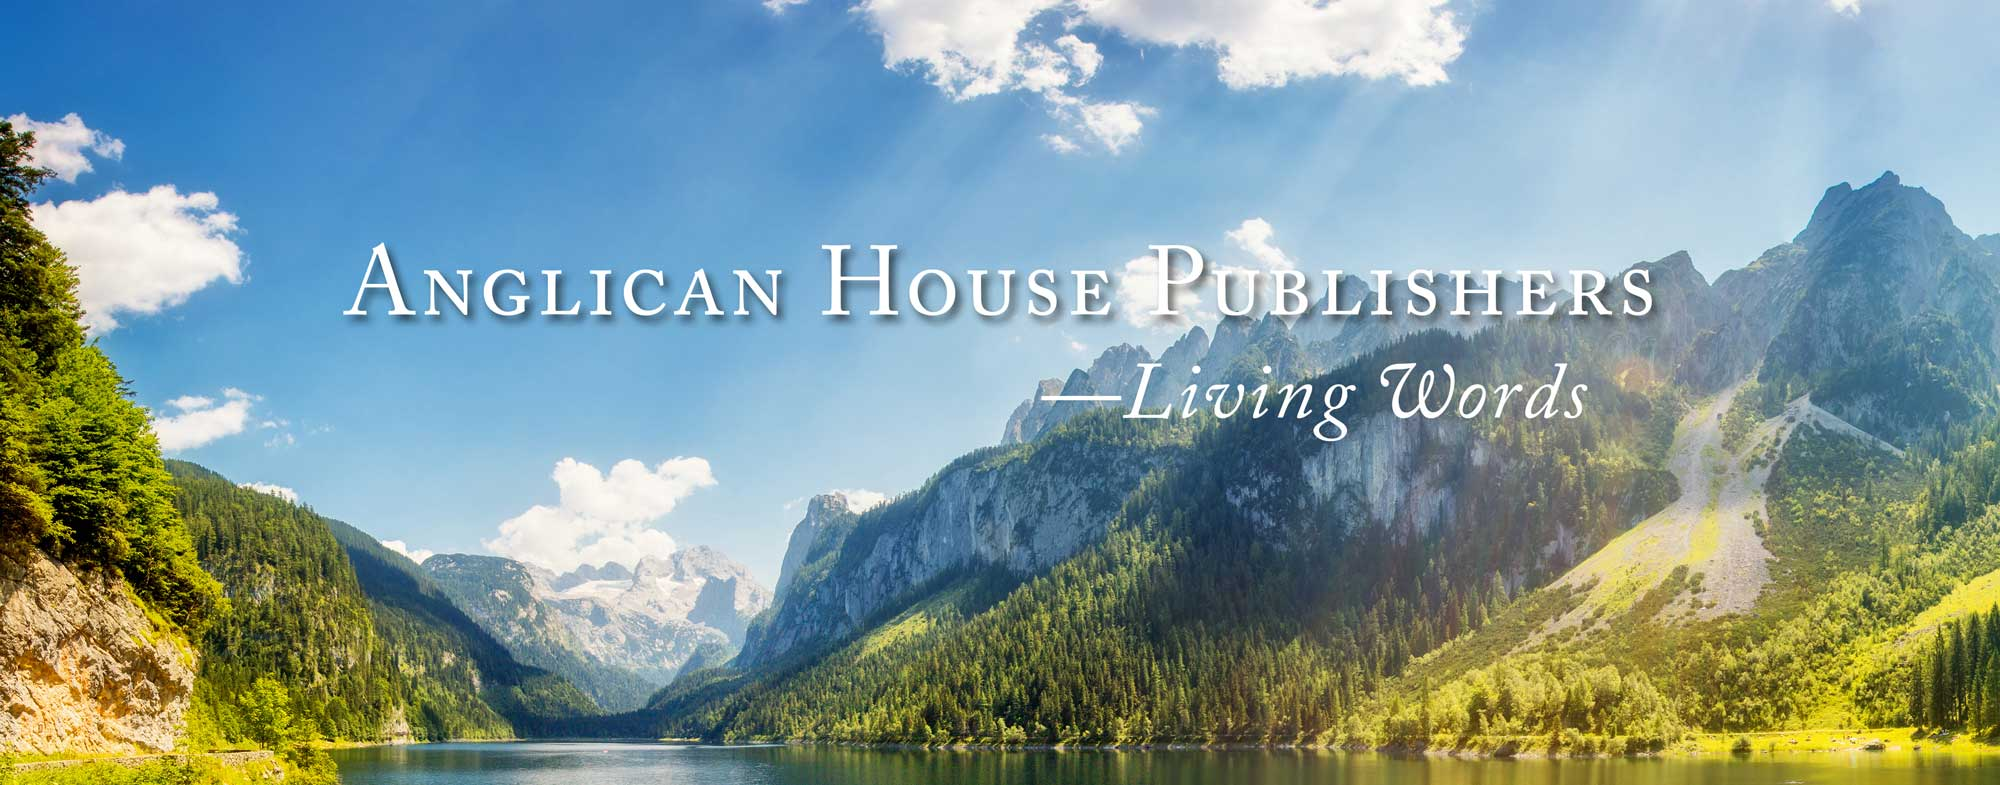 Anglican House Publishers- Living Words text overlaid beautiful mountain scene